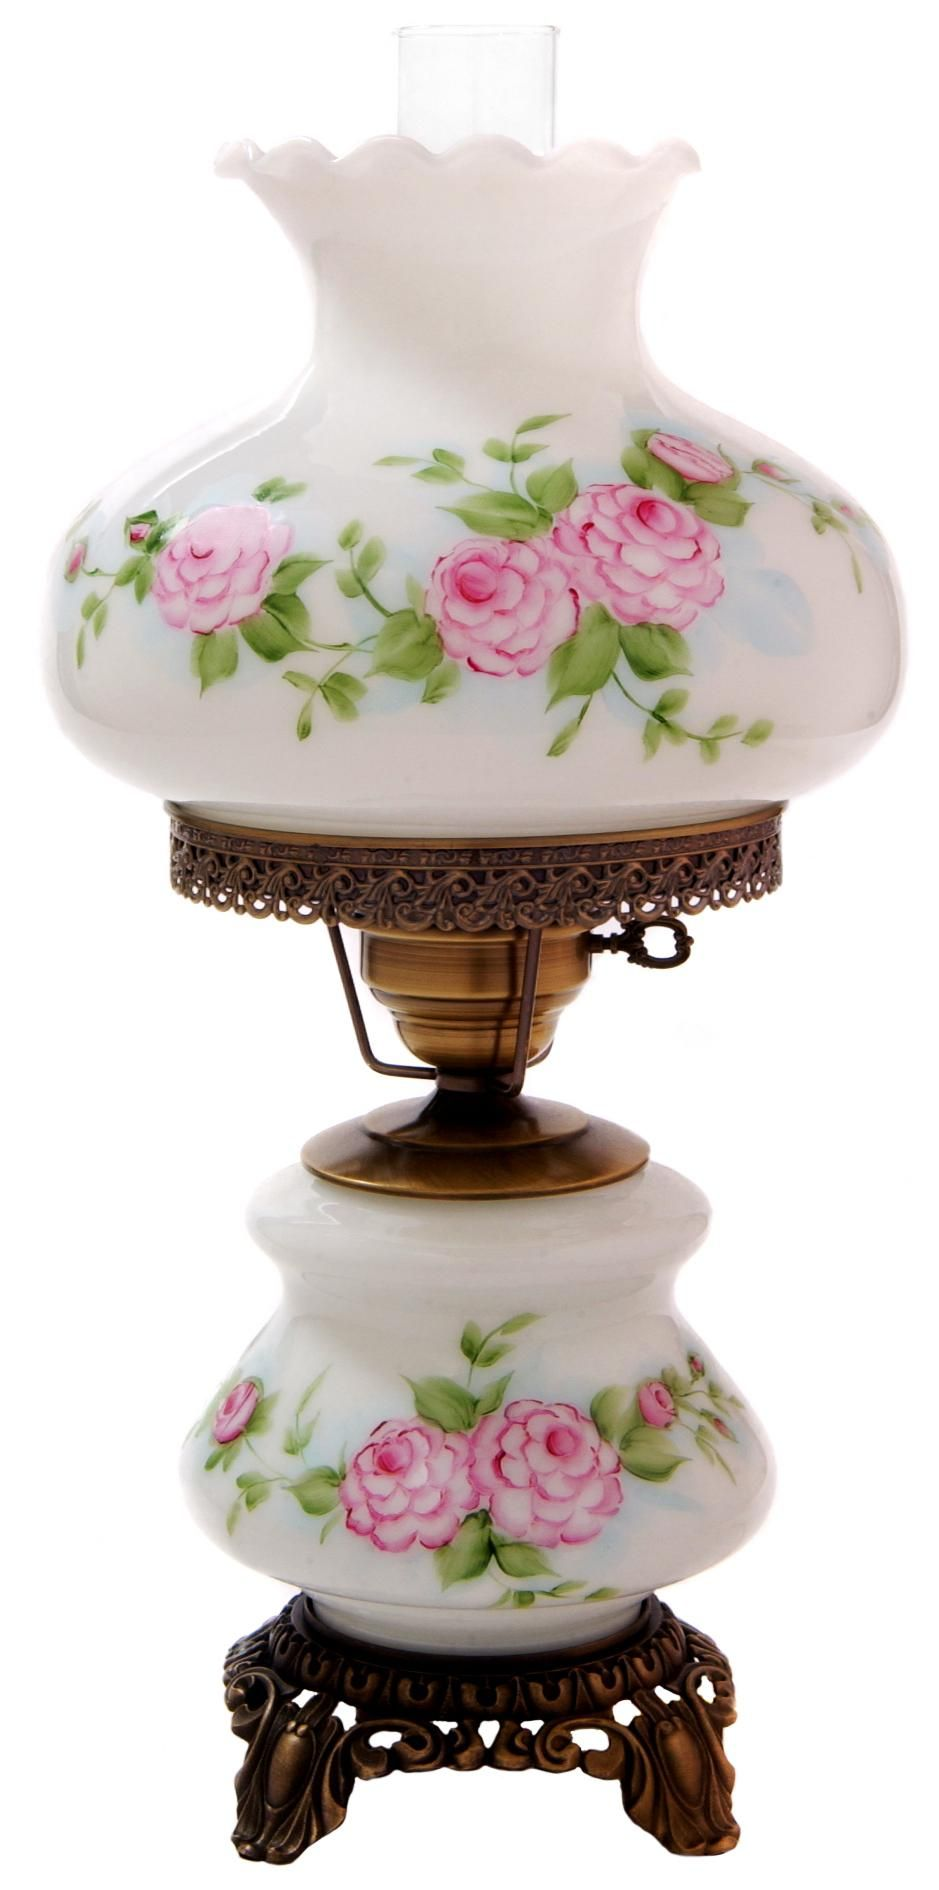 Pink red roses medium hurricane night light table lamp style pink red roses medium hurricane night light table lamp i had a lamp very similar aloadofball Image collections